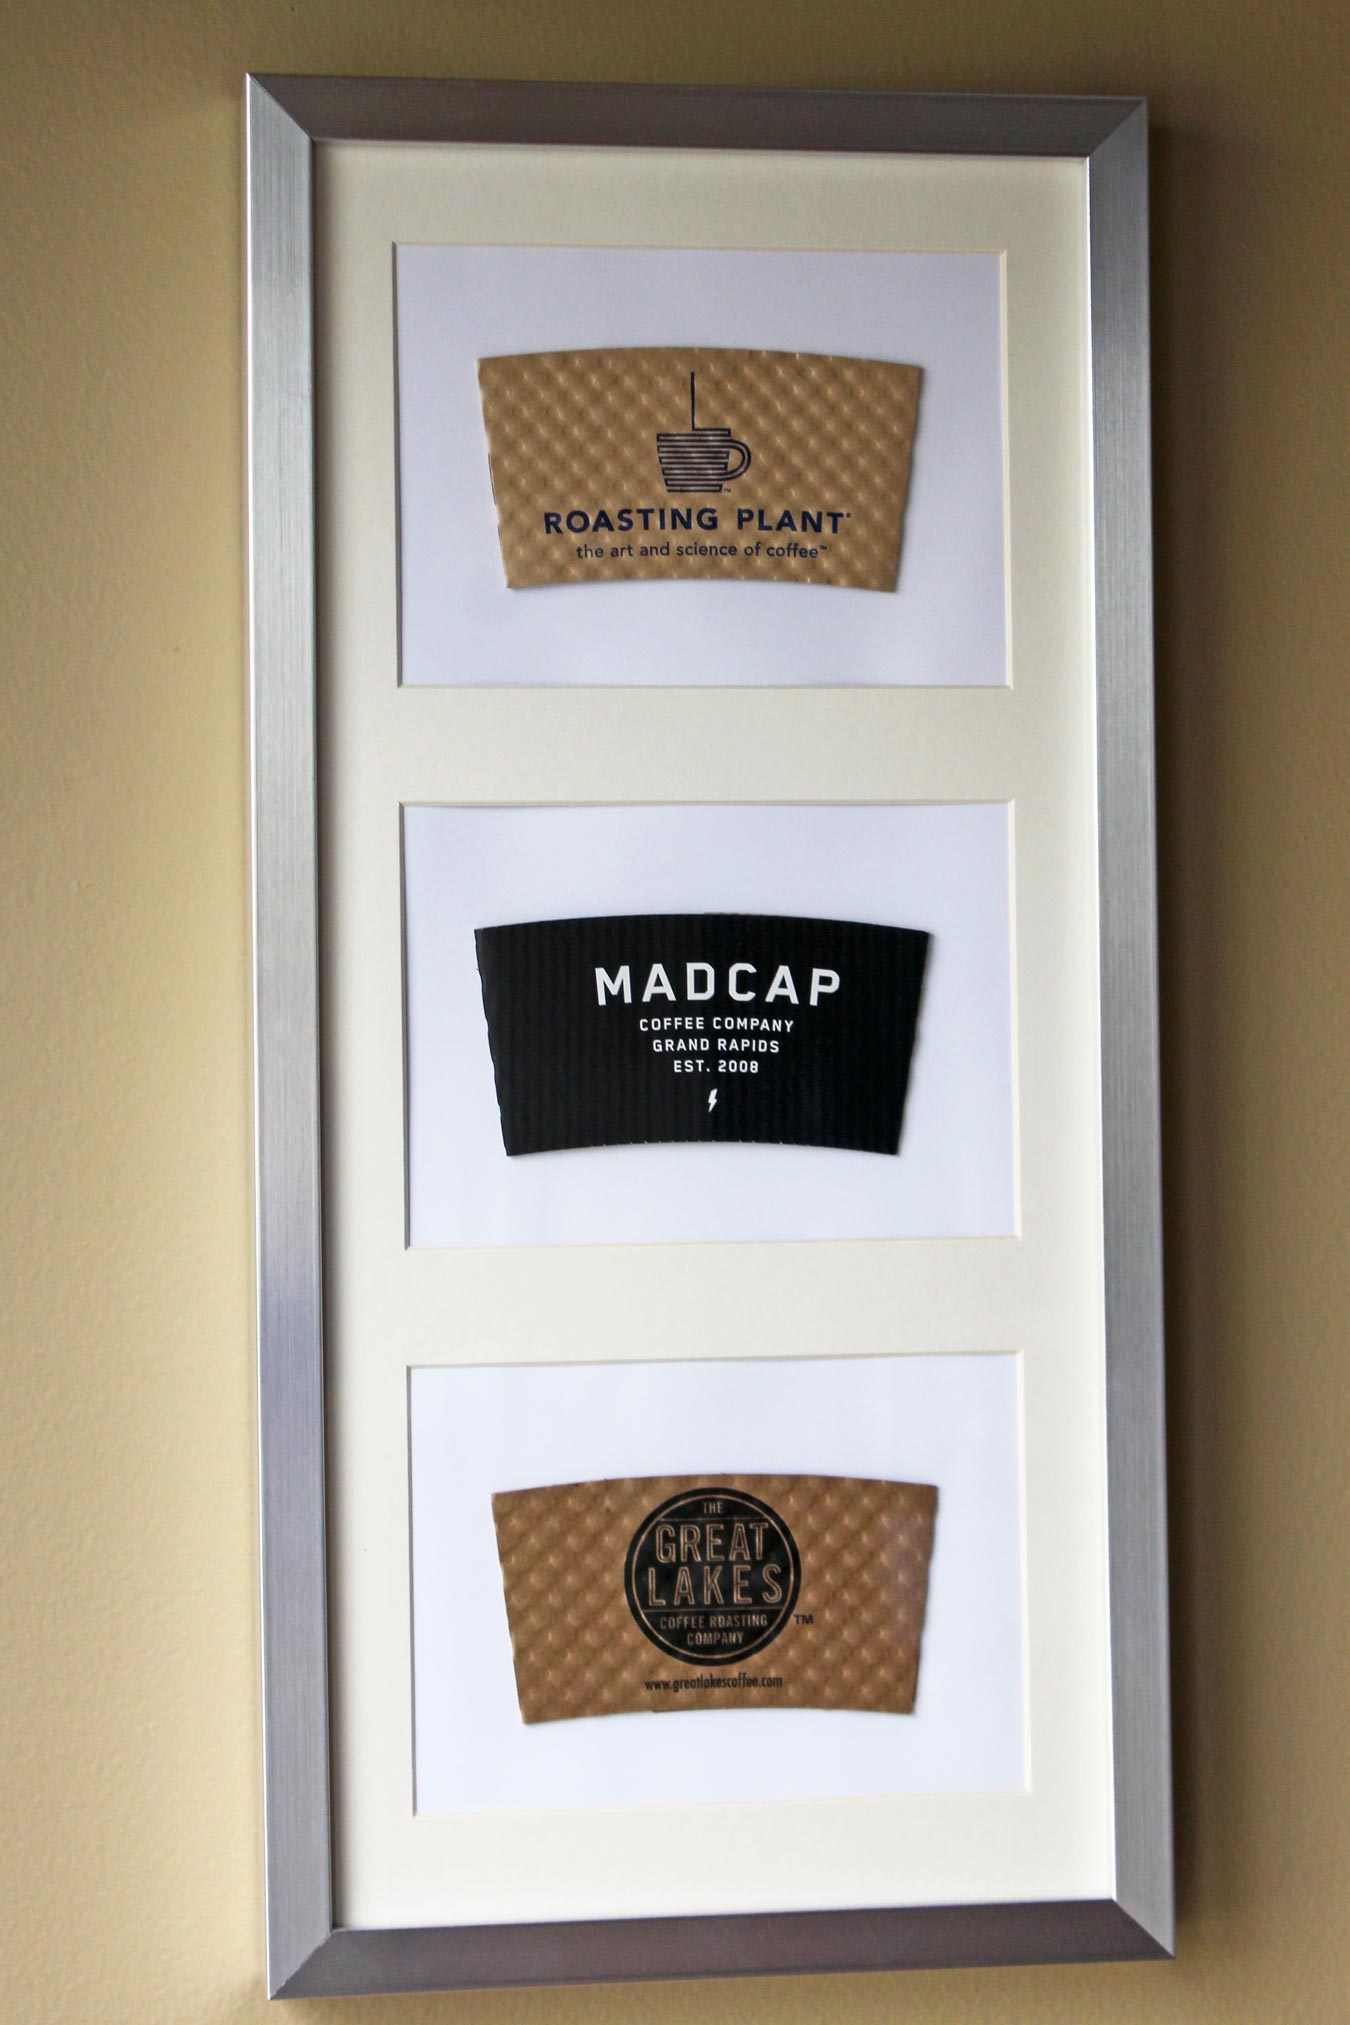 How To Repurpose Coffee Sleeves As Wall Art [via Wading in Big Shoes]